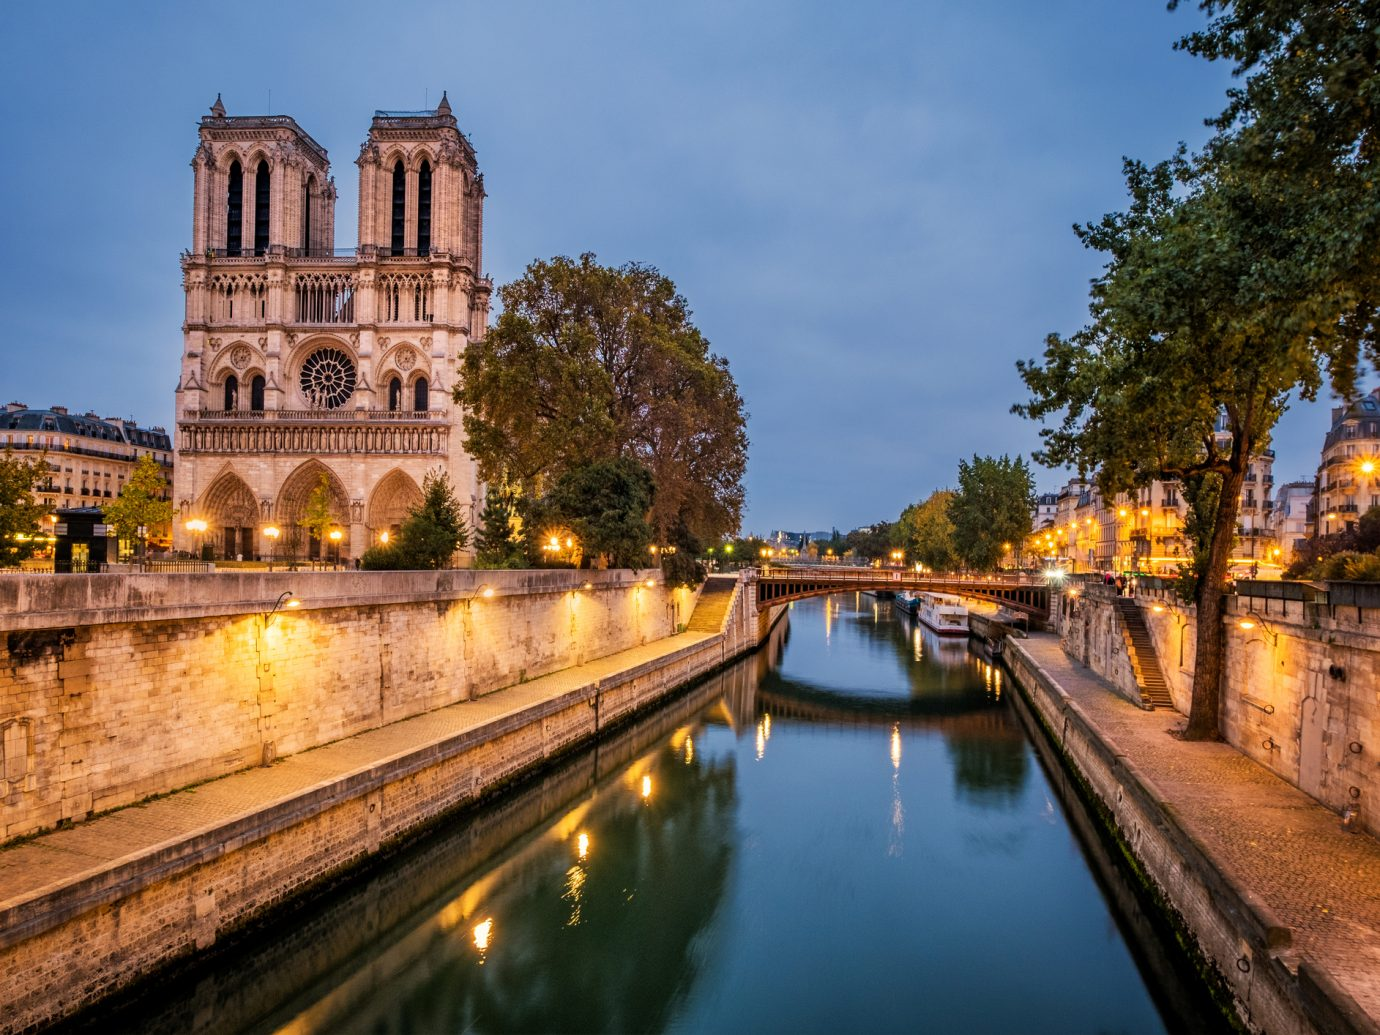 The Notre Dame Chatedral in Paris at the river Seine